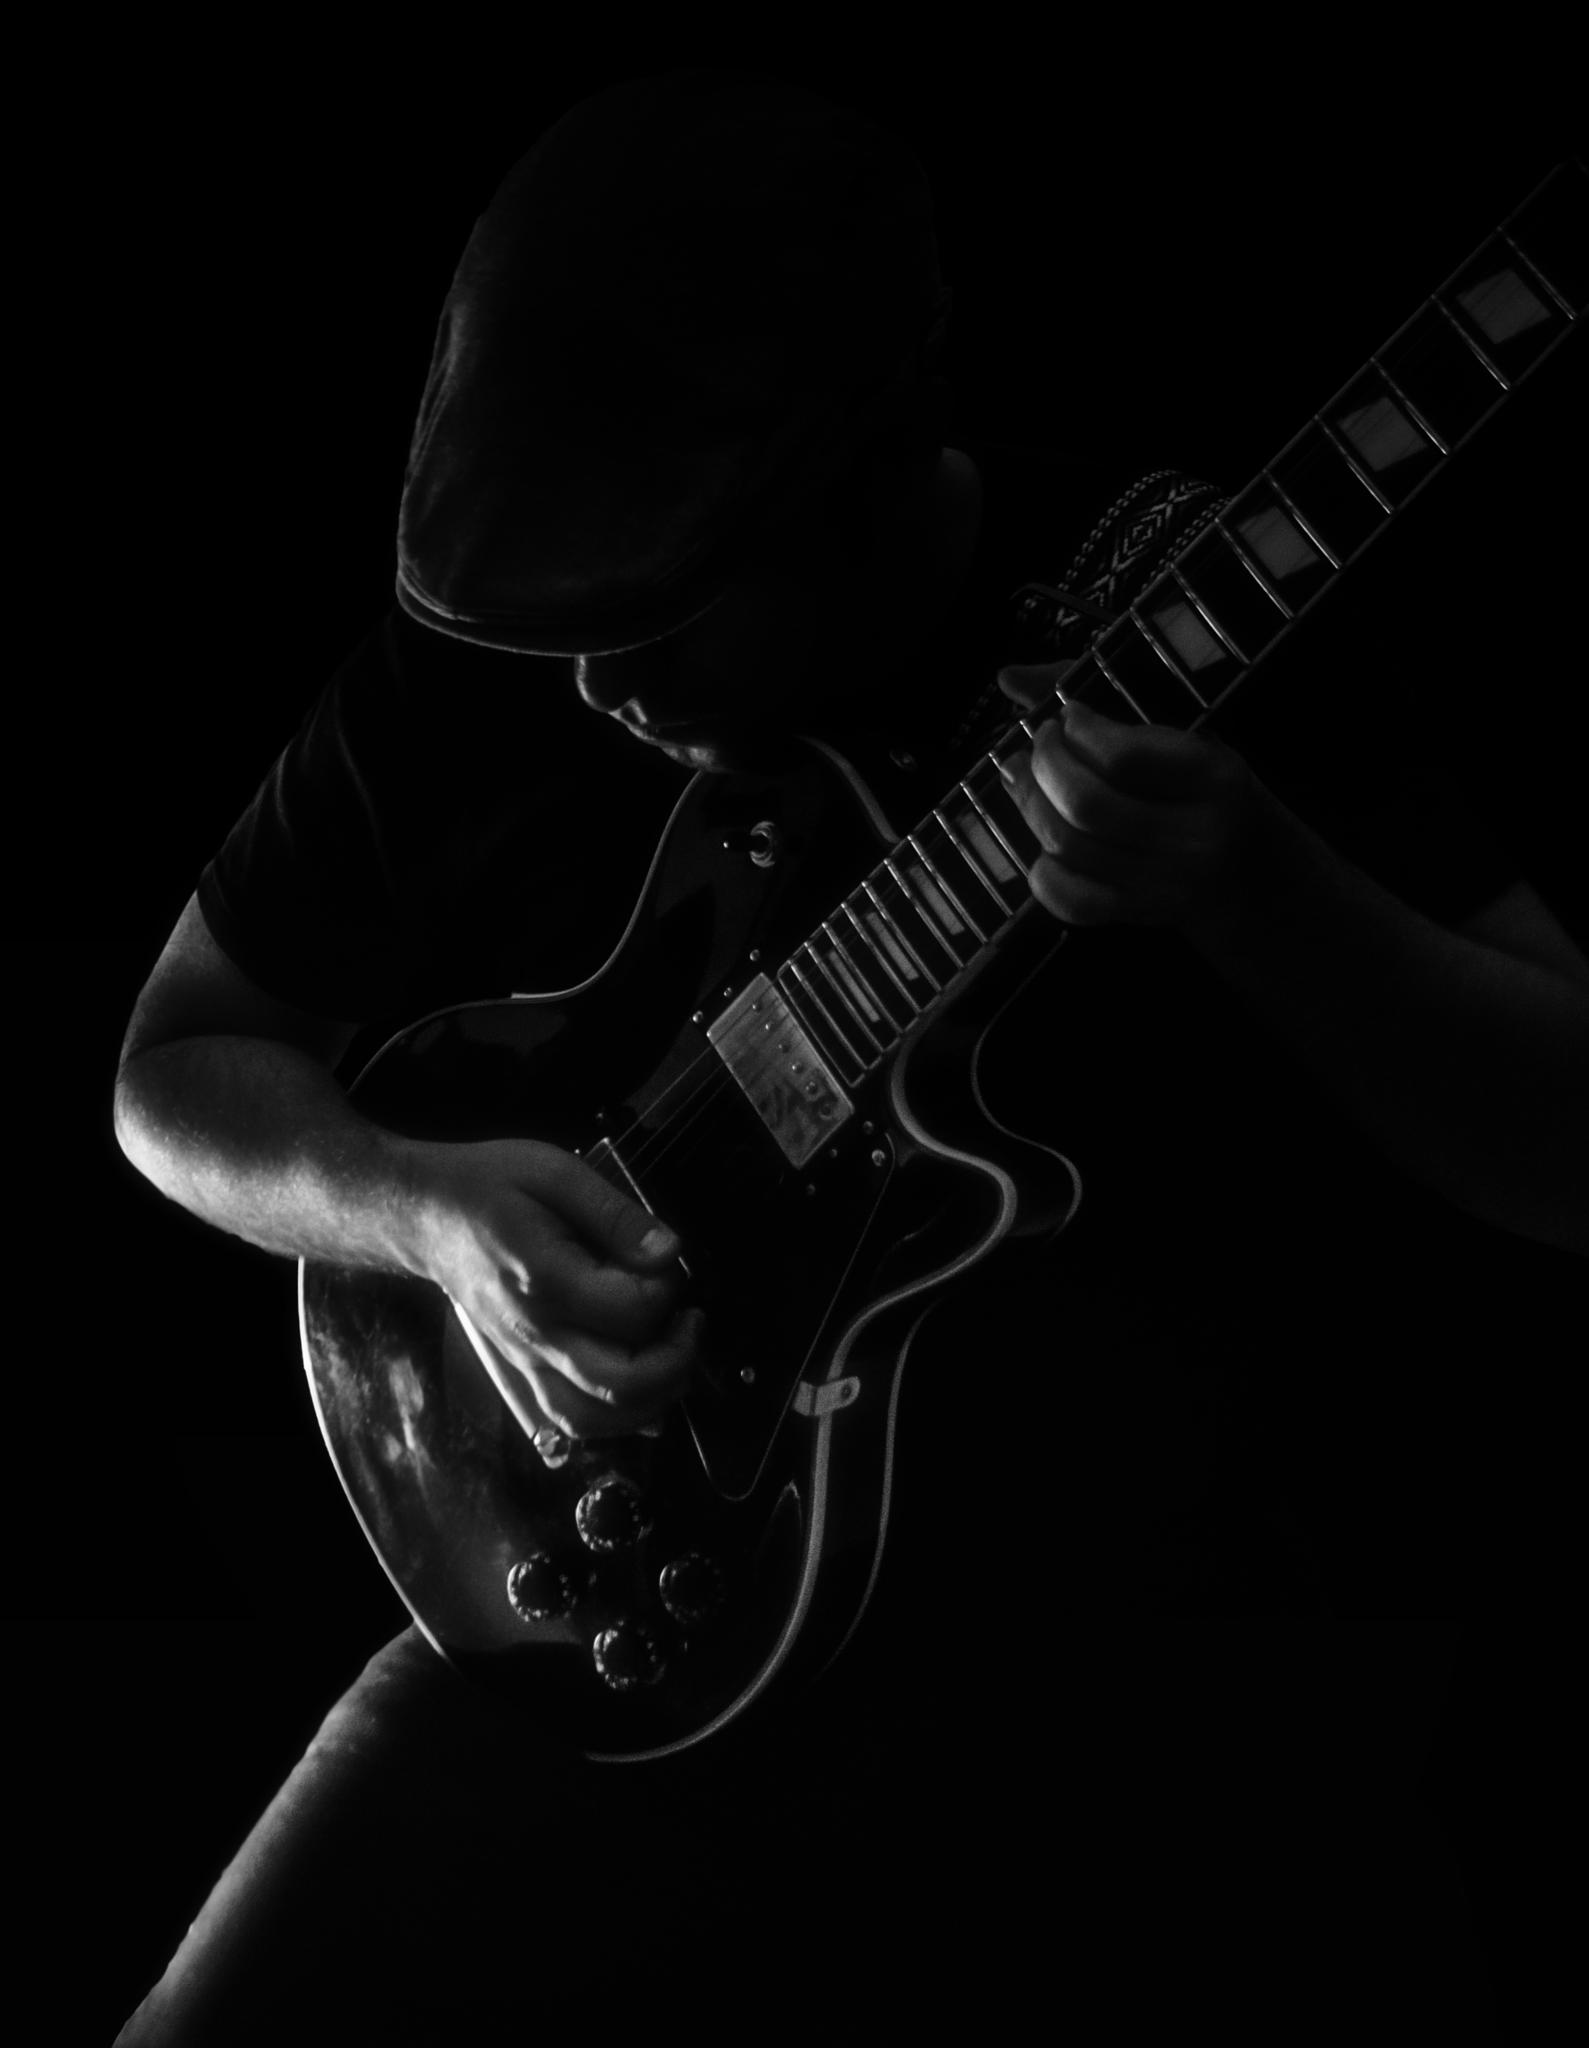 Guitar by Photo Shot